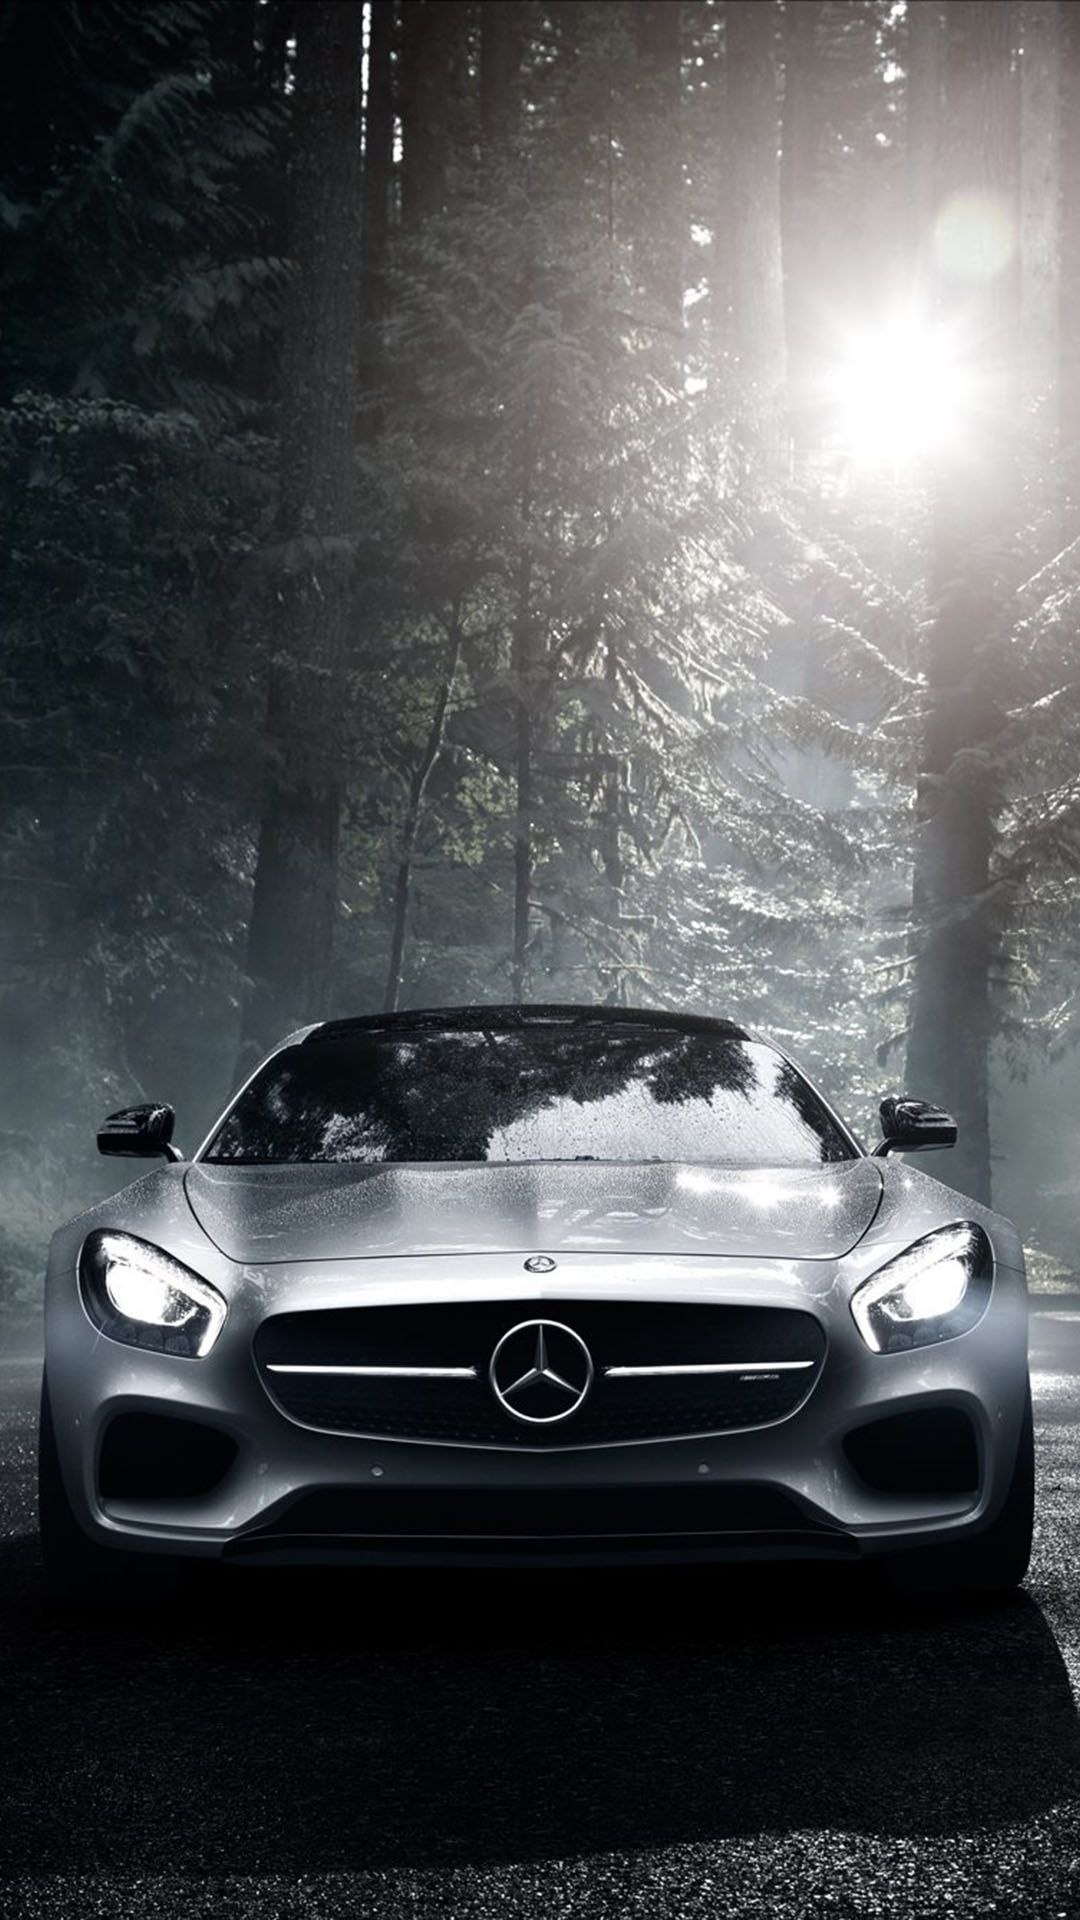 AMG Phone Wallpapers - Top Free AMG Phone Backgrounds ...